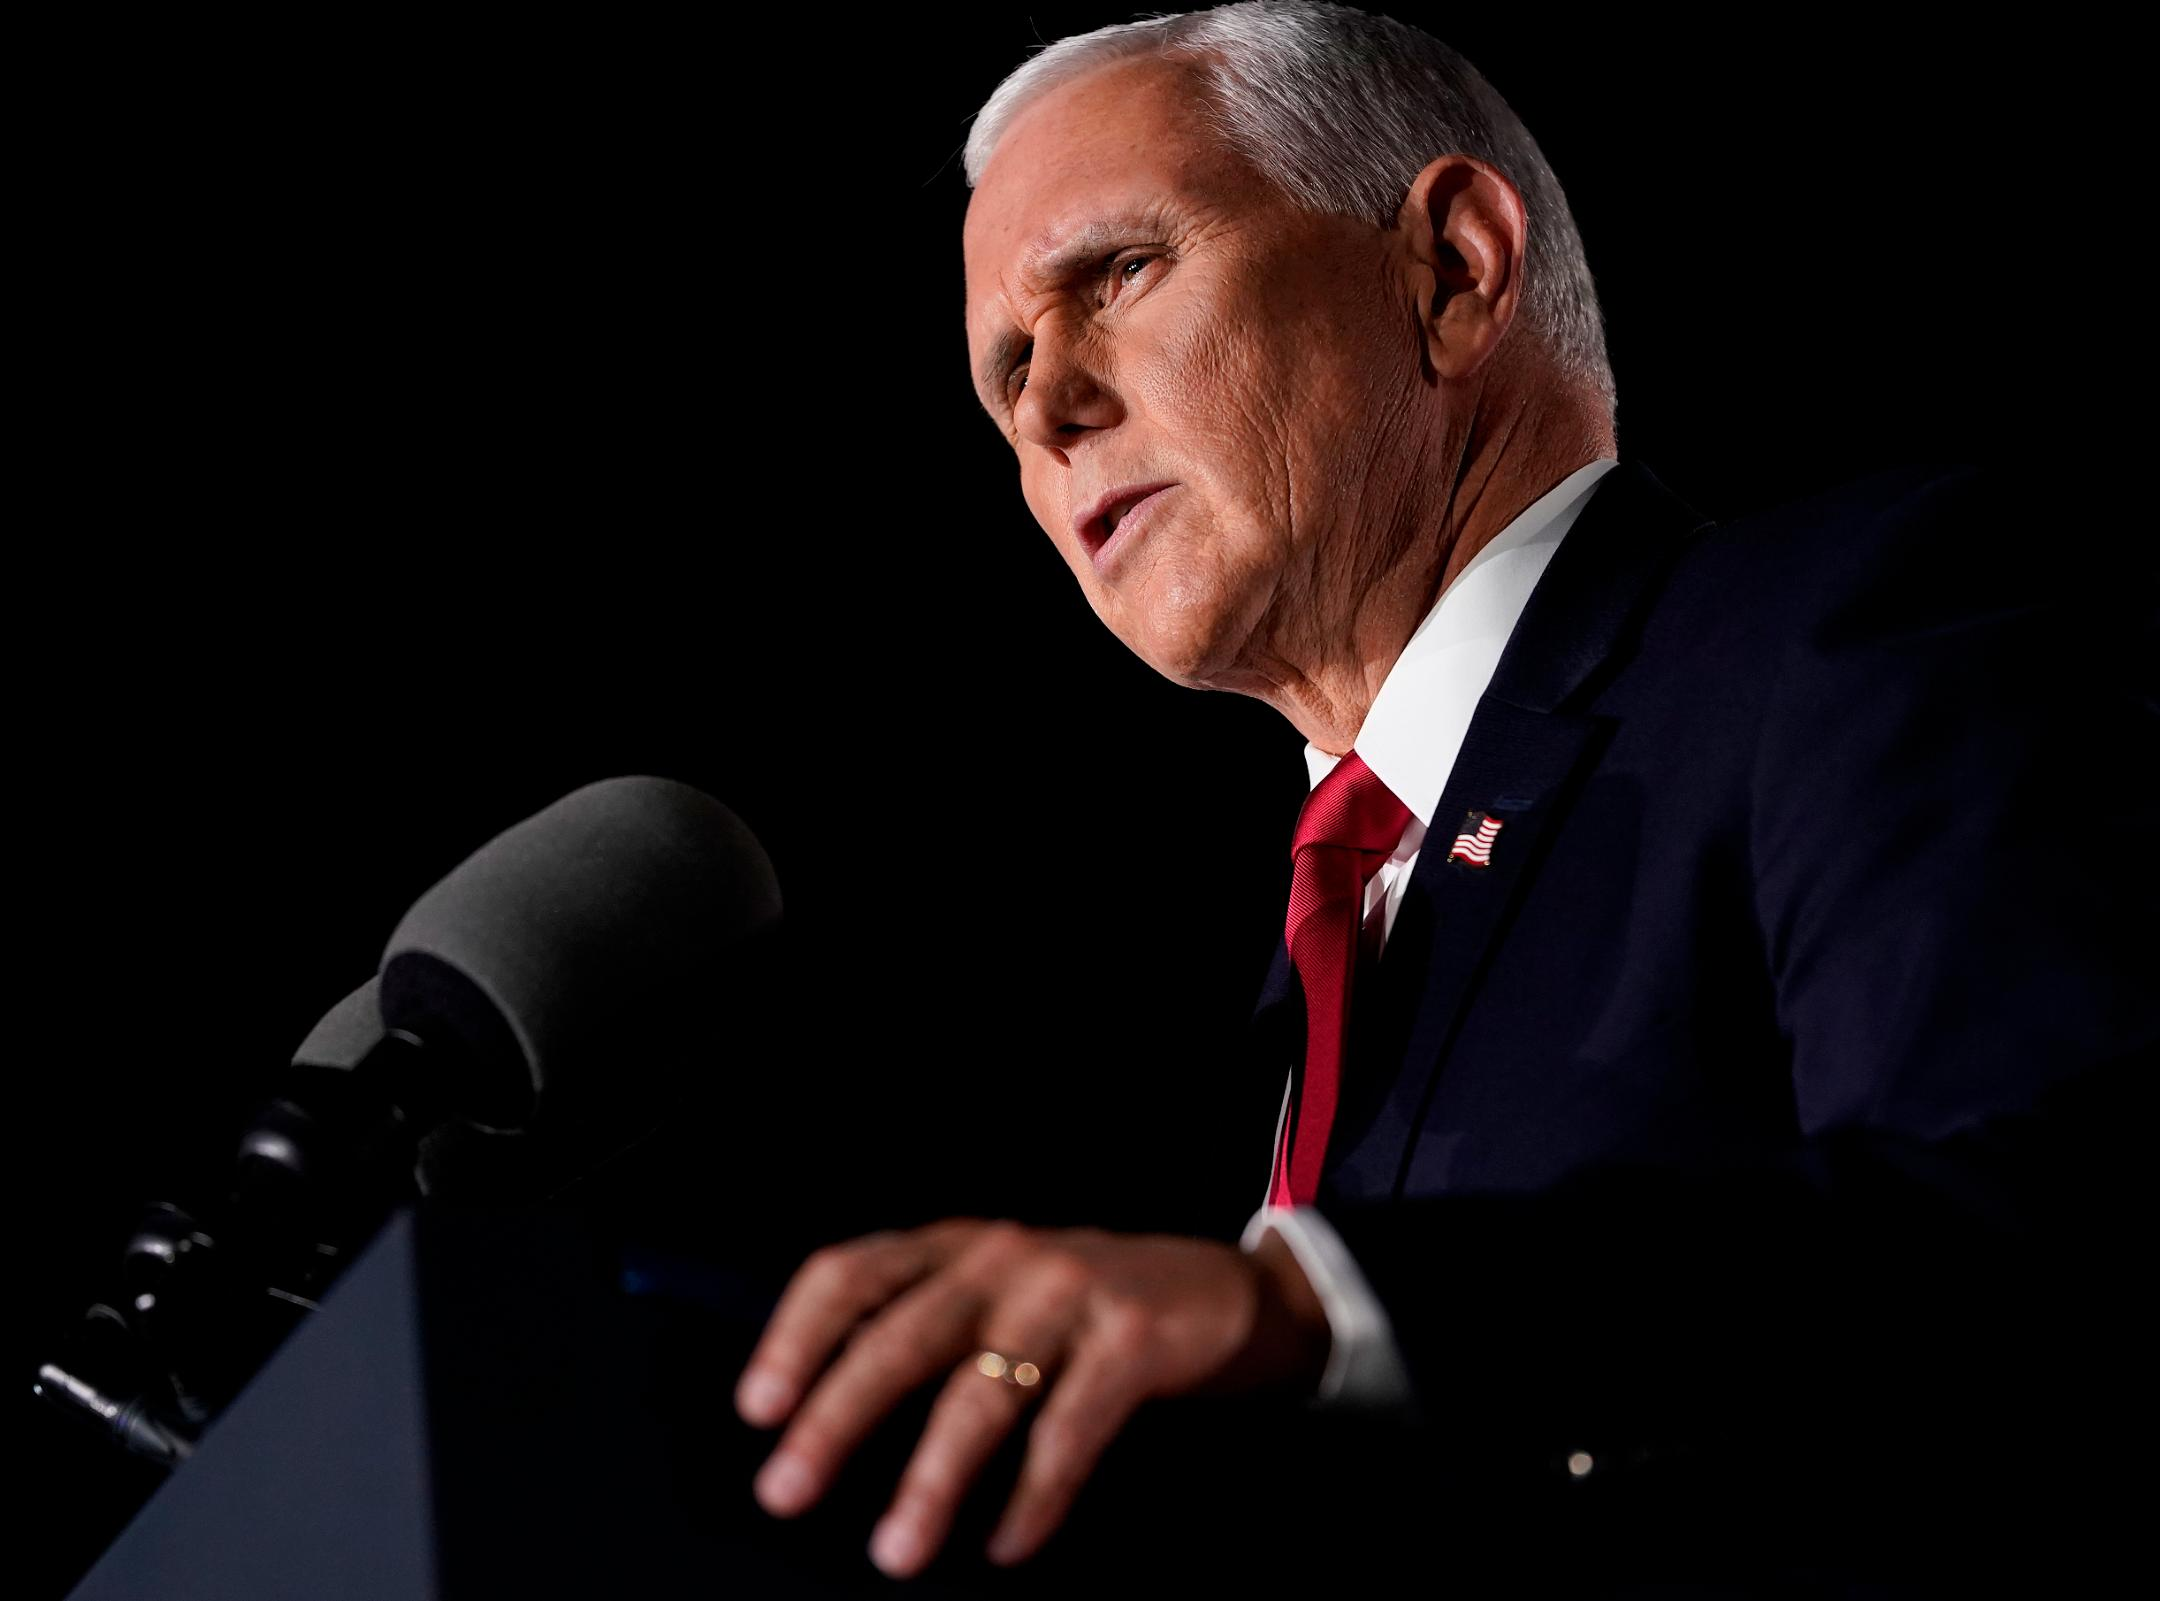 Mike Pence to visit women's health clinic that falsely ties abortion to breast cancer